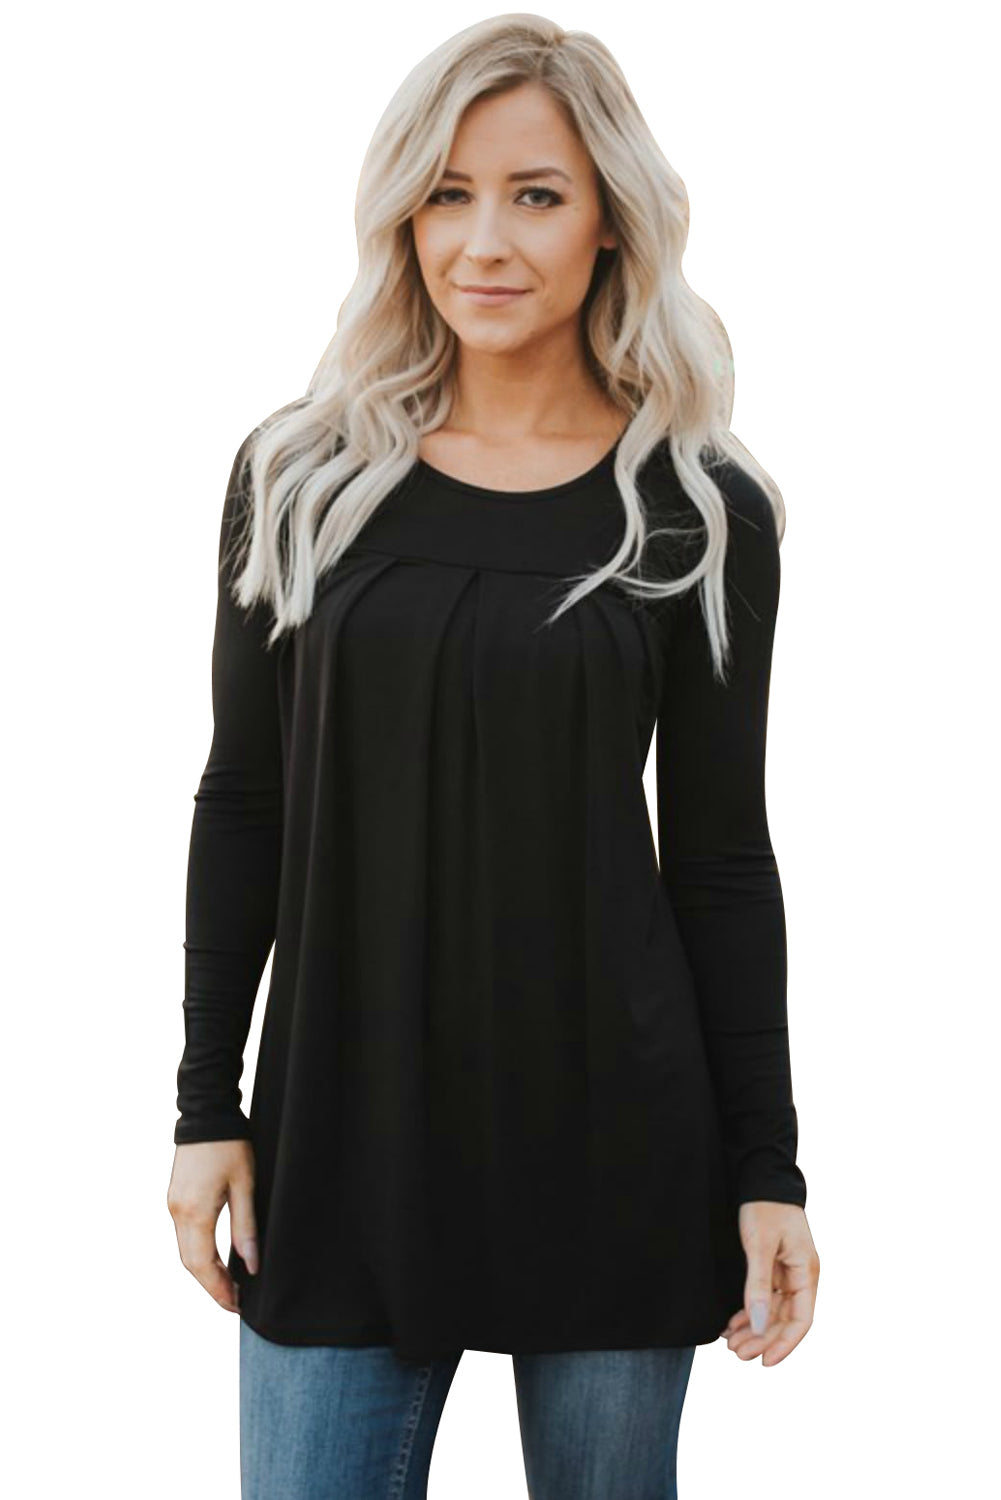 Chicloth Black Pleated Flowy Long Sleeve Top